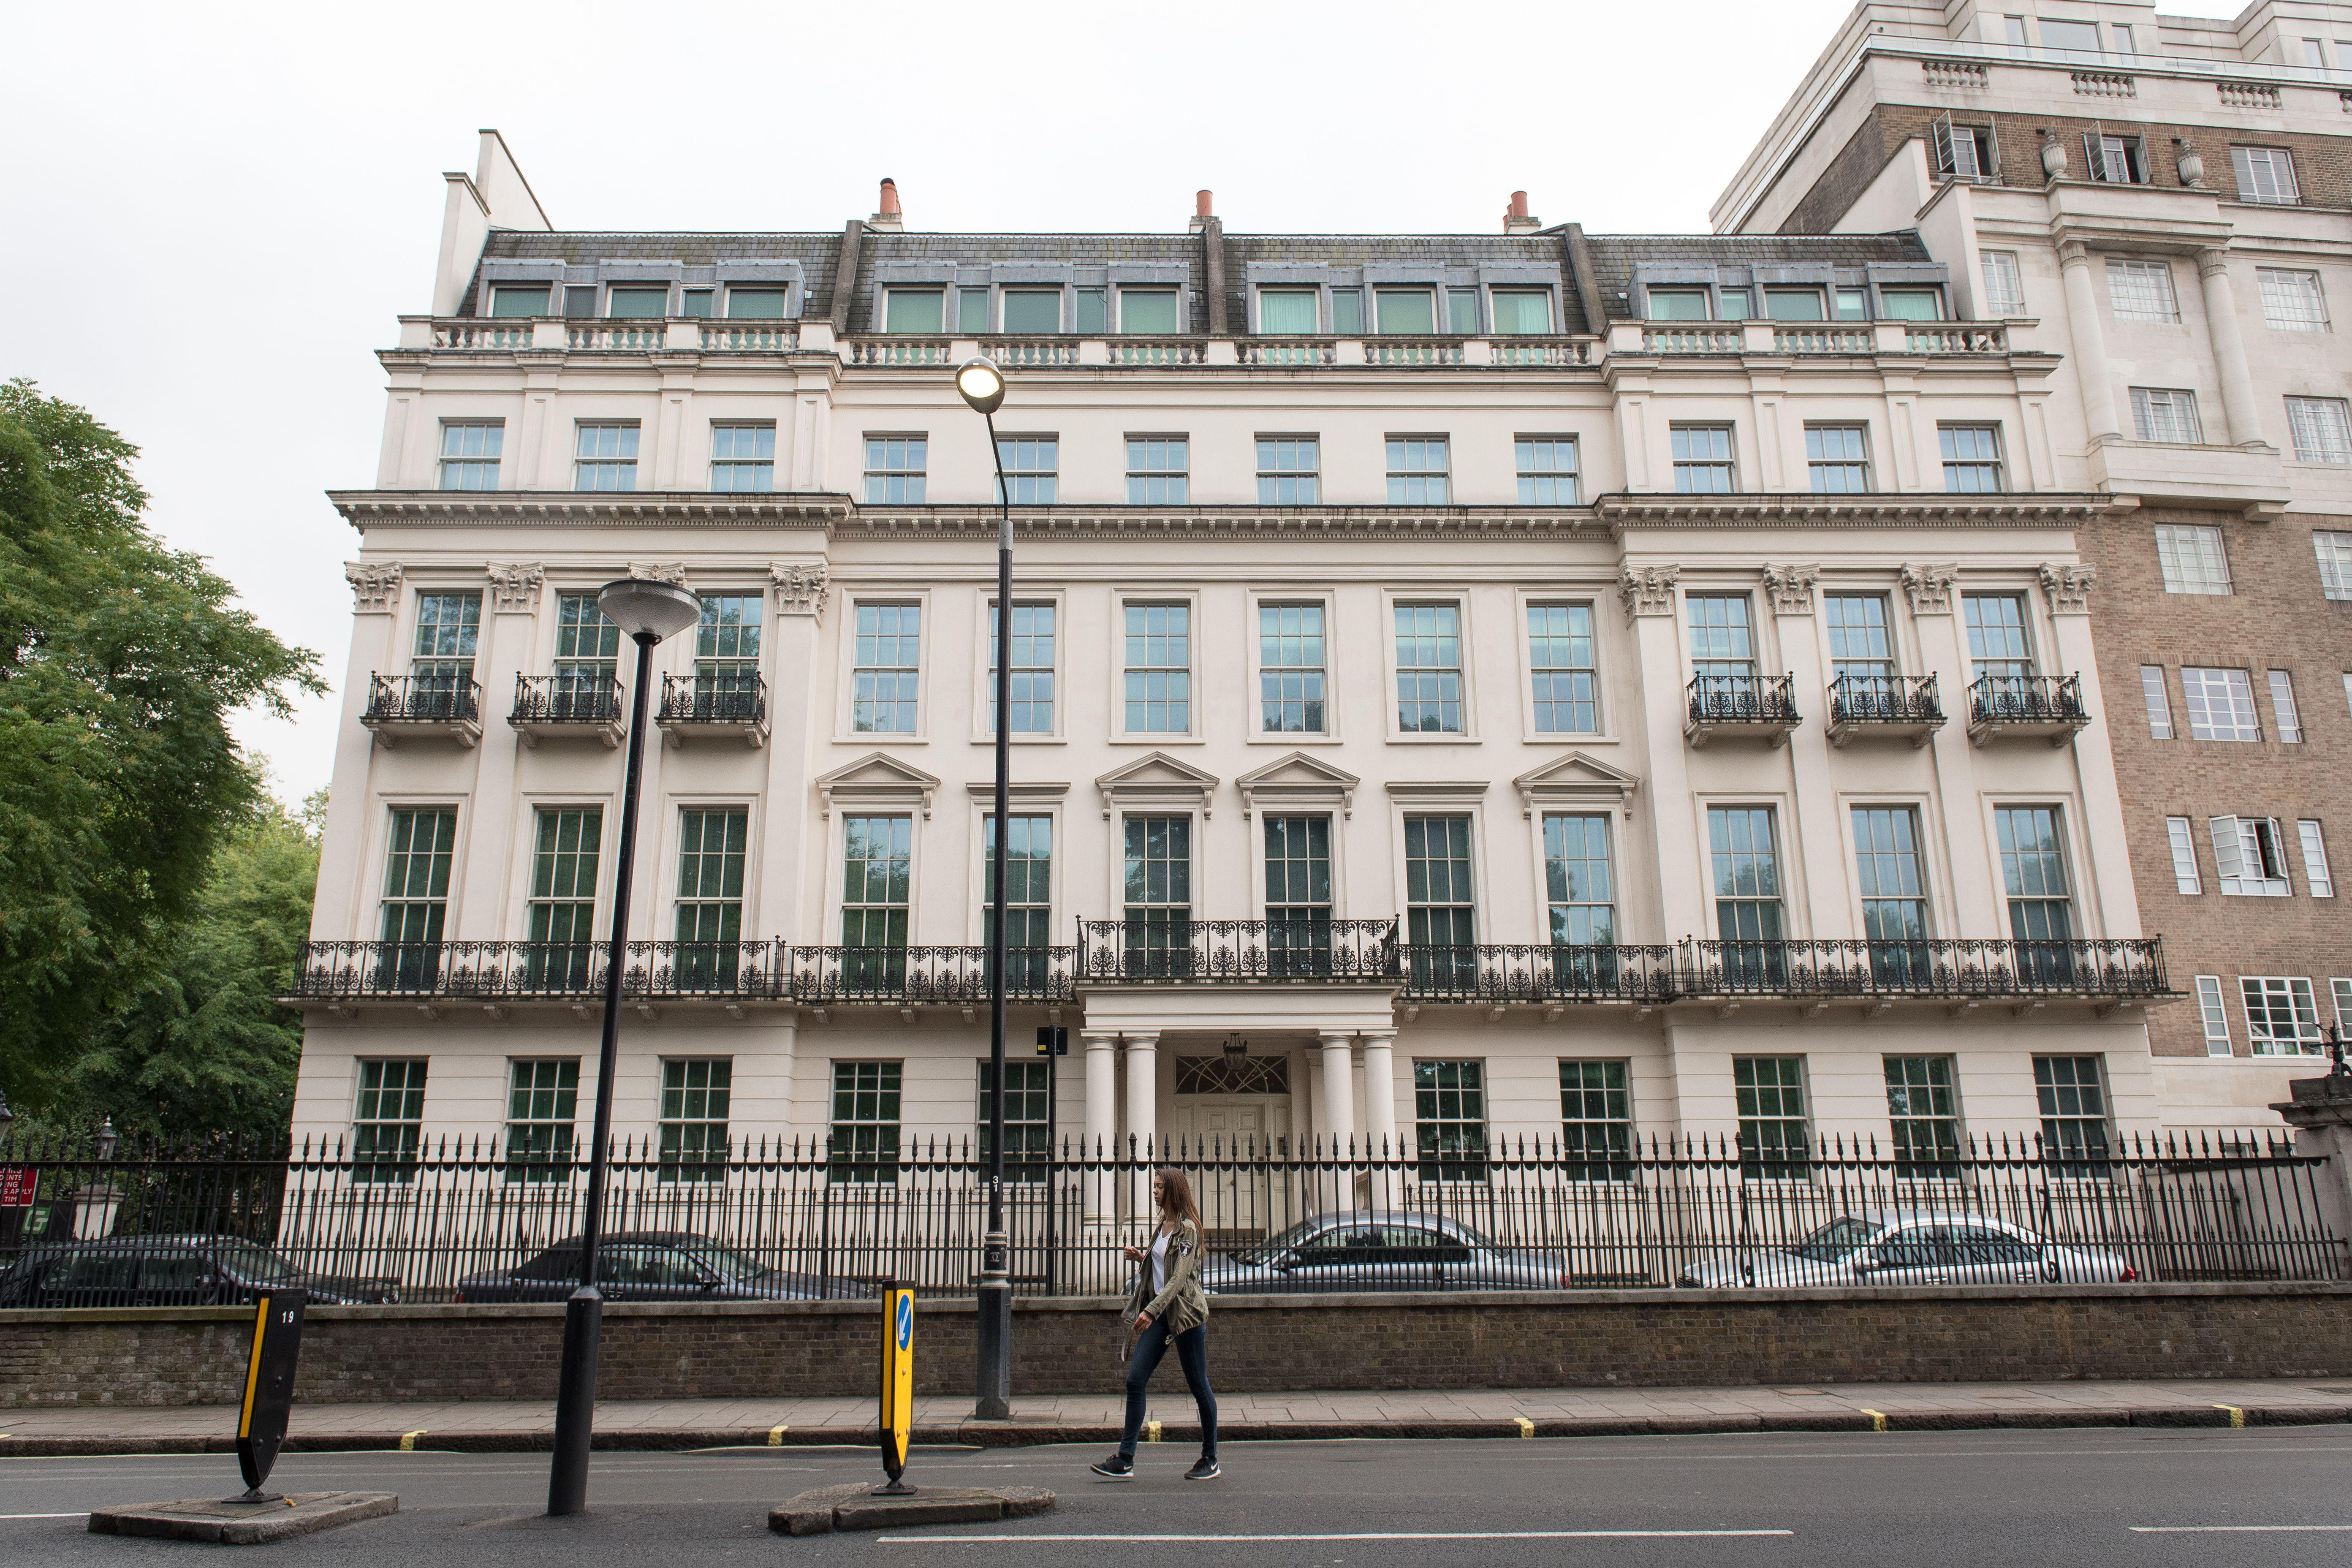 Britain's Most Expensive Home Approved For $276 Million Renovation